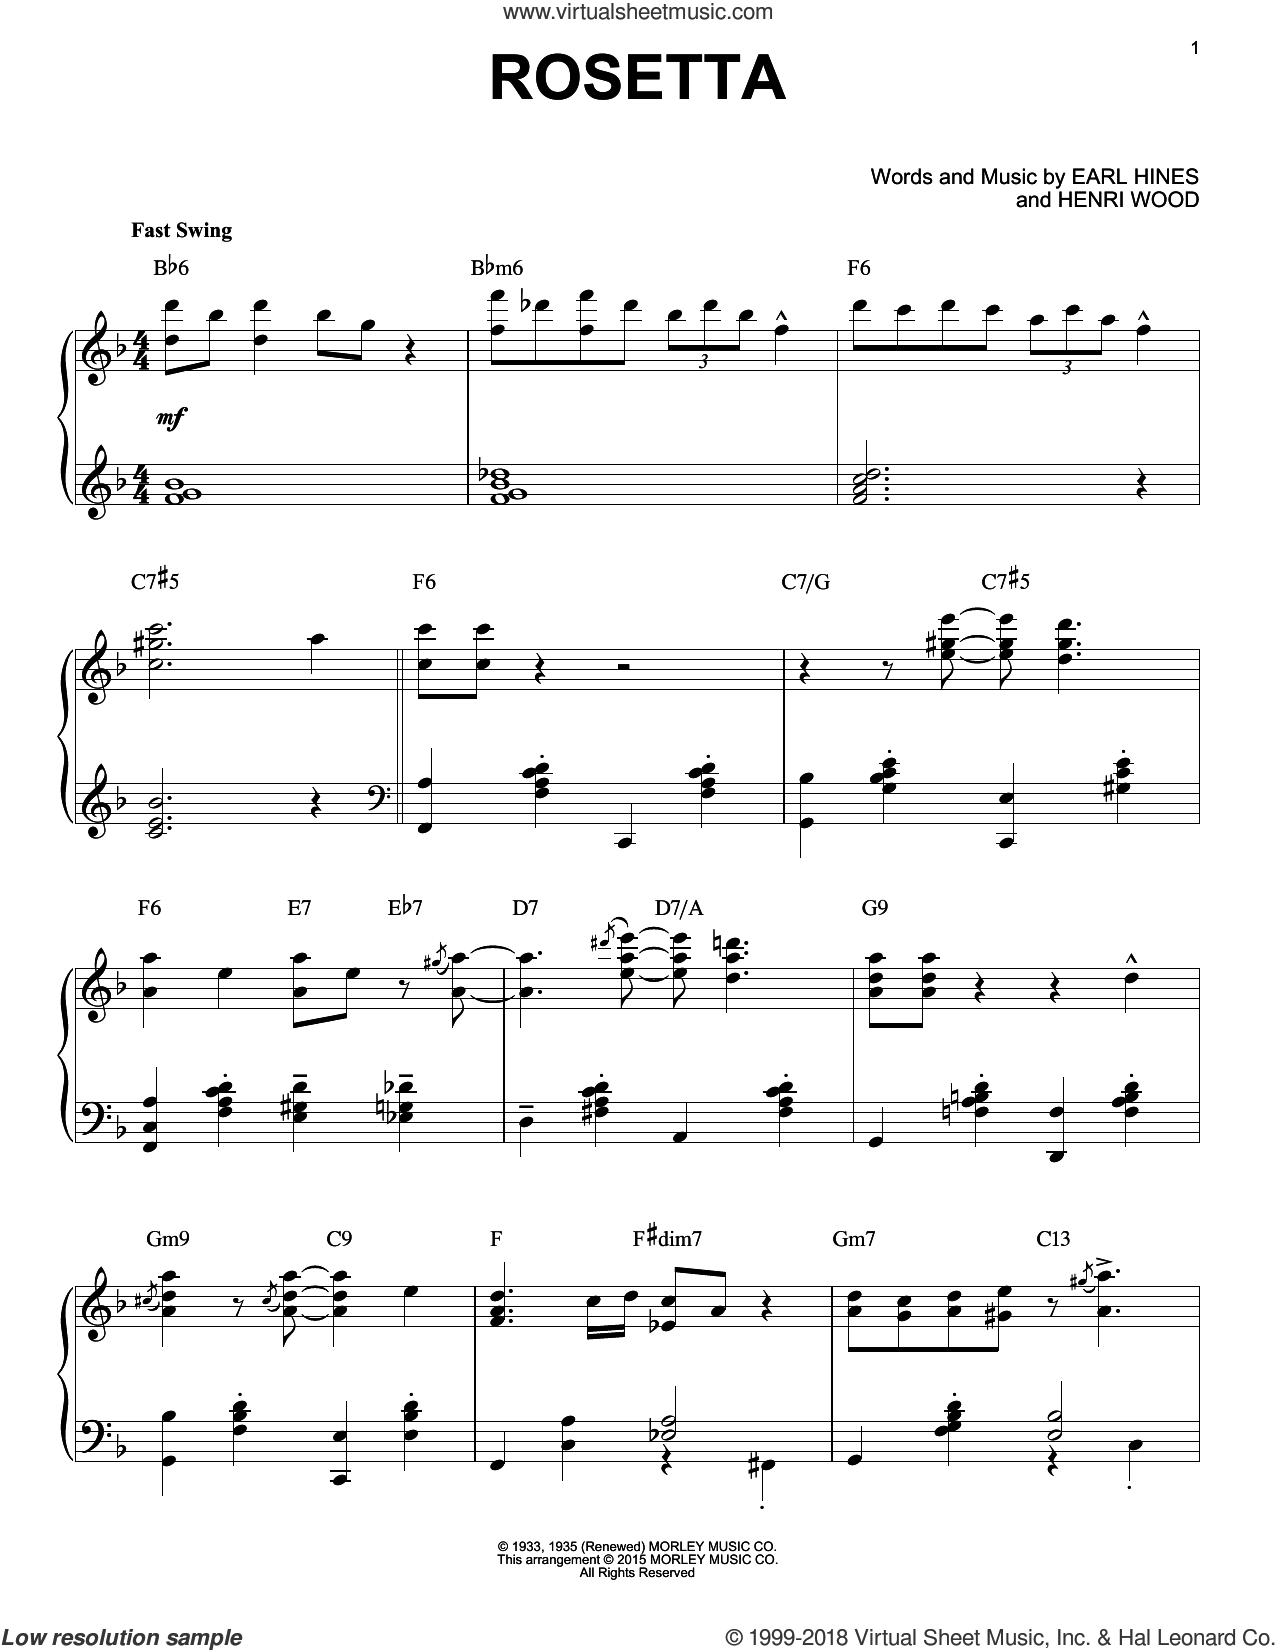 Rosetta [Stride version] (arr. Brent Edstrom) sheet music for piano solo by Henri Wood and Earl Hines, intermediate skill level